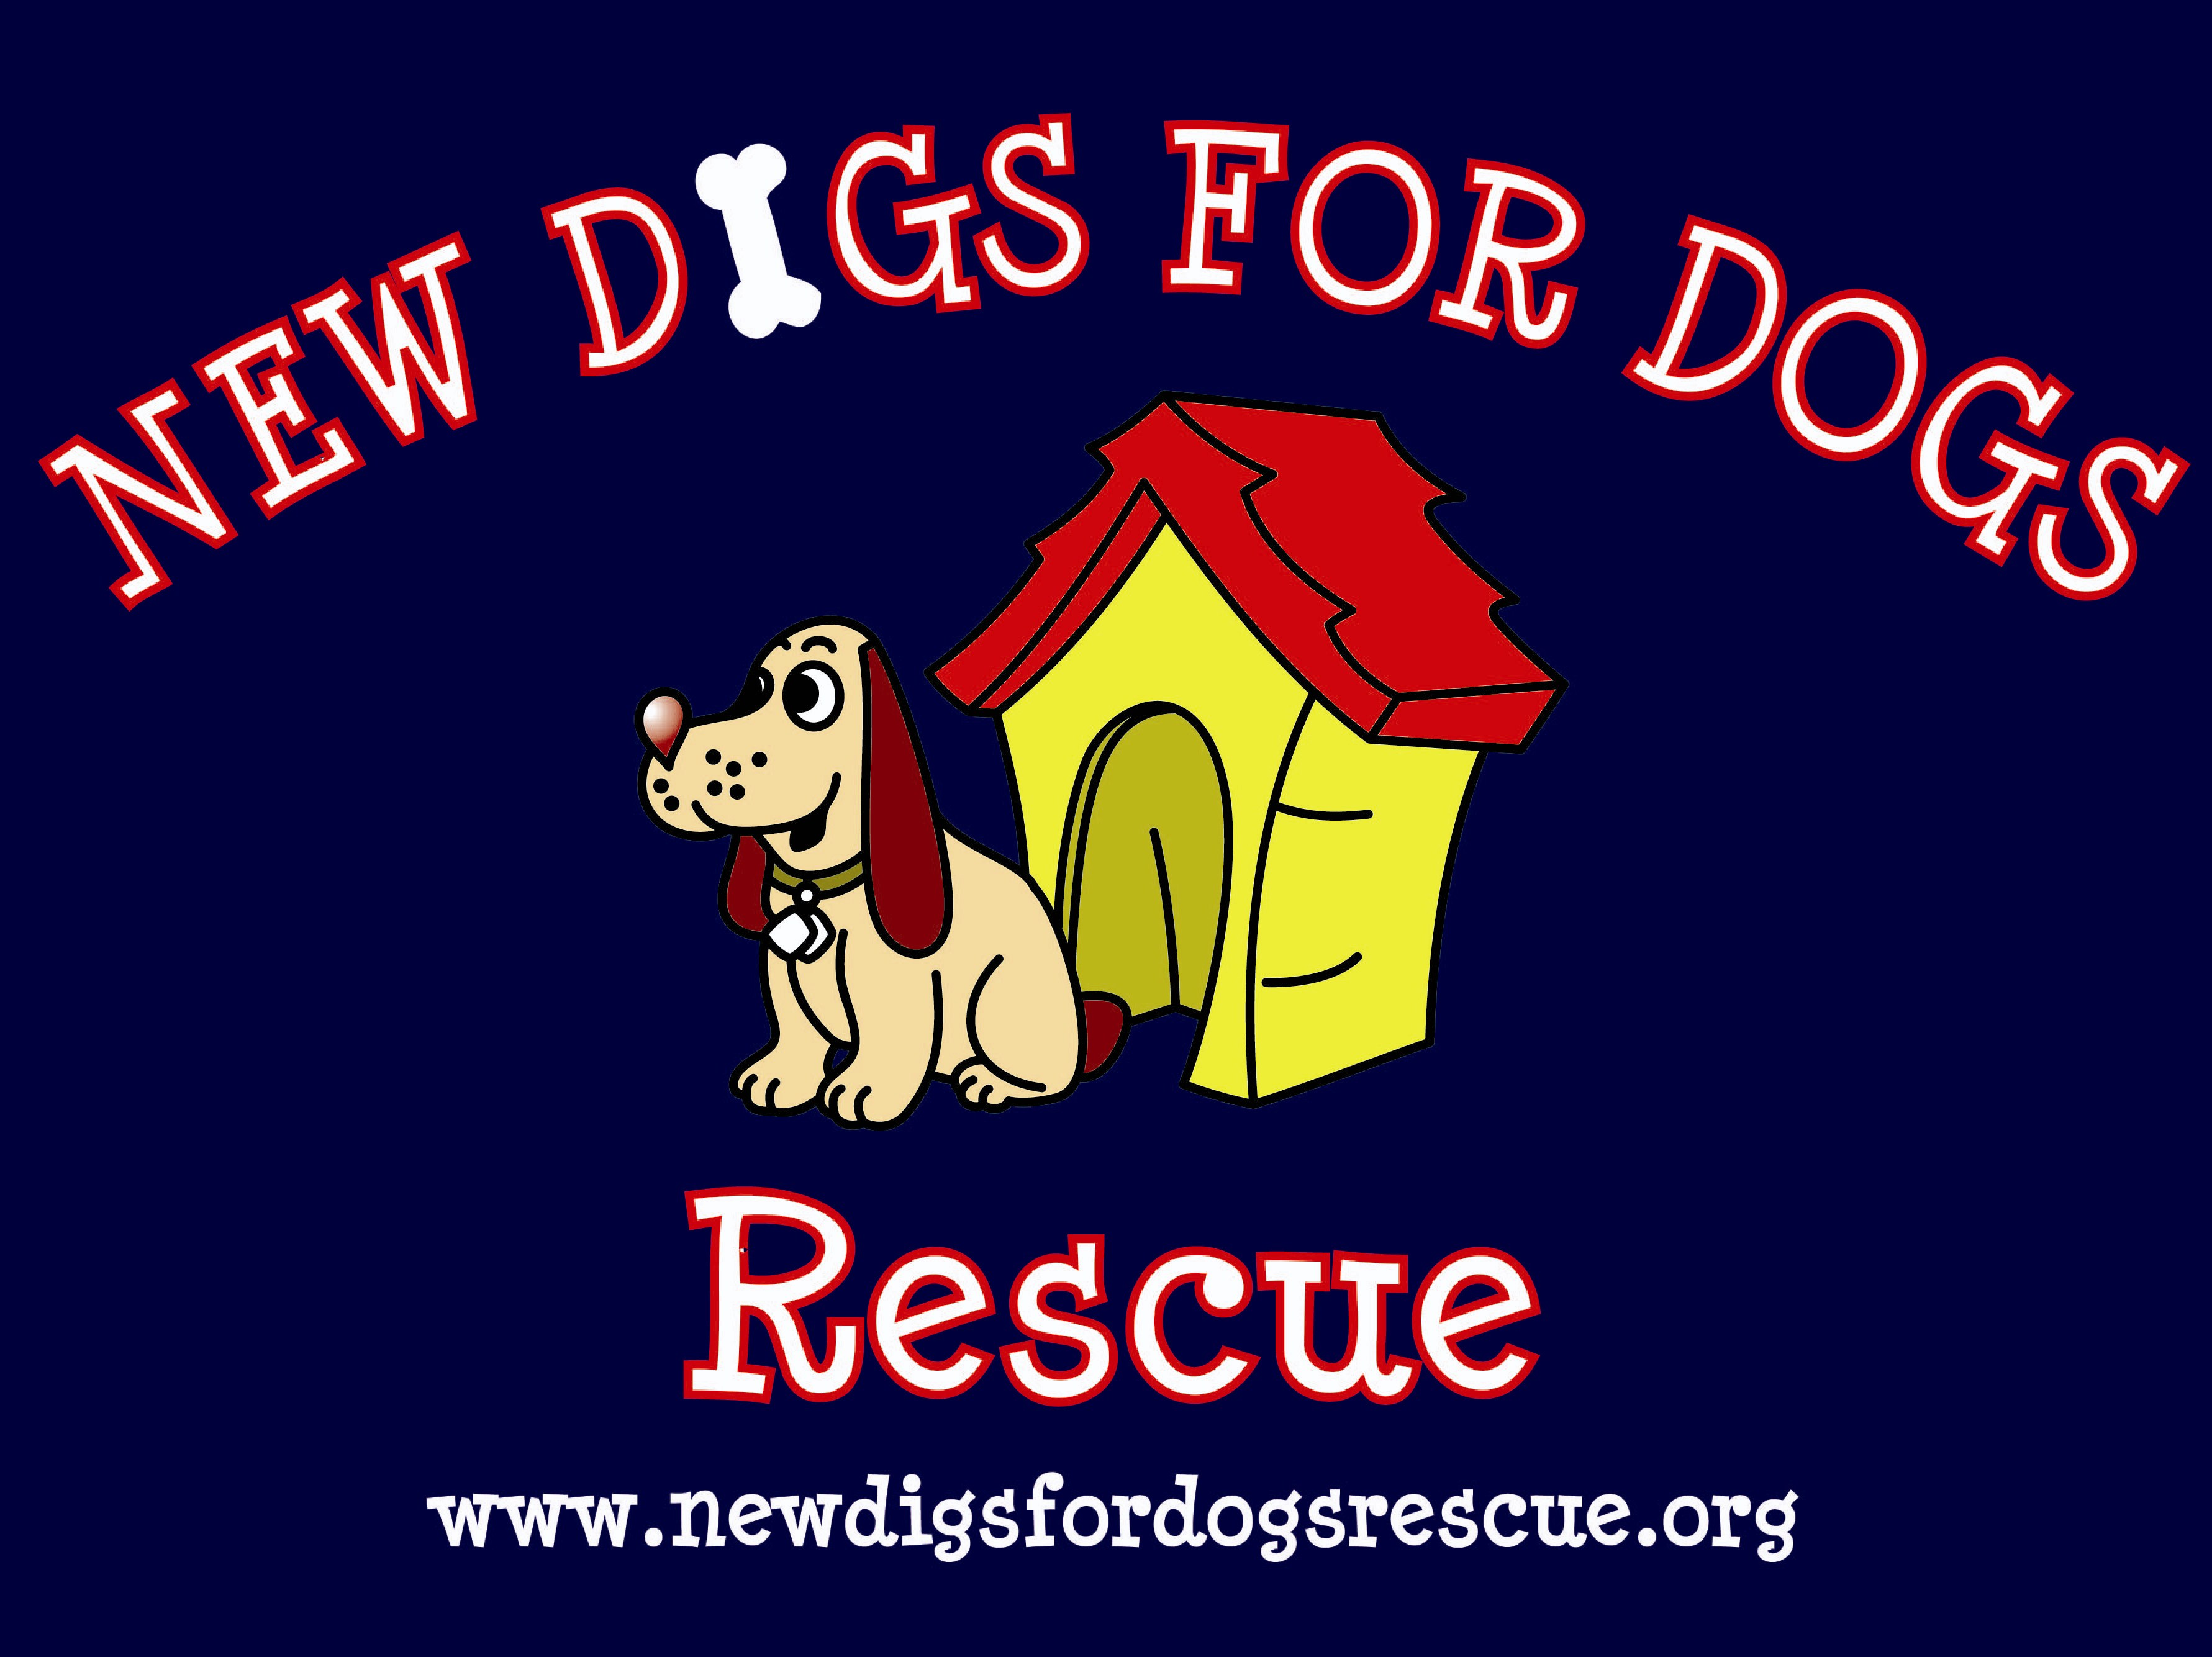 New Digs for Dogs Rescue